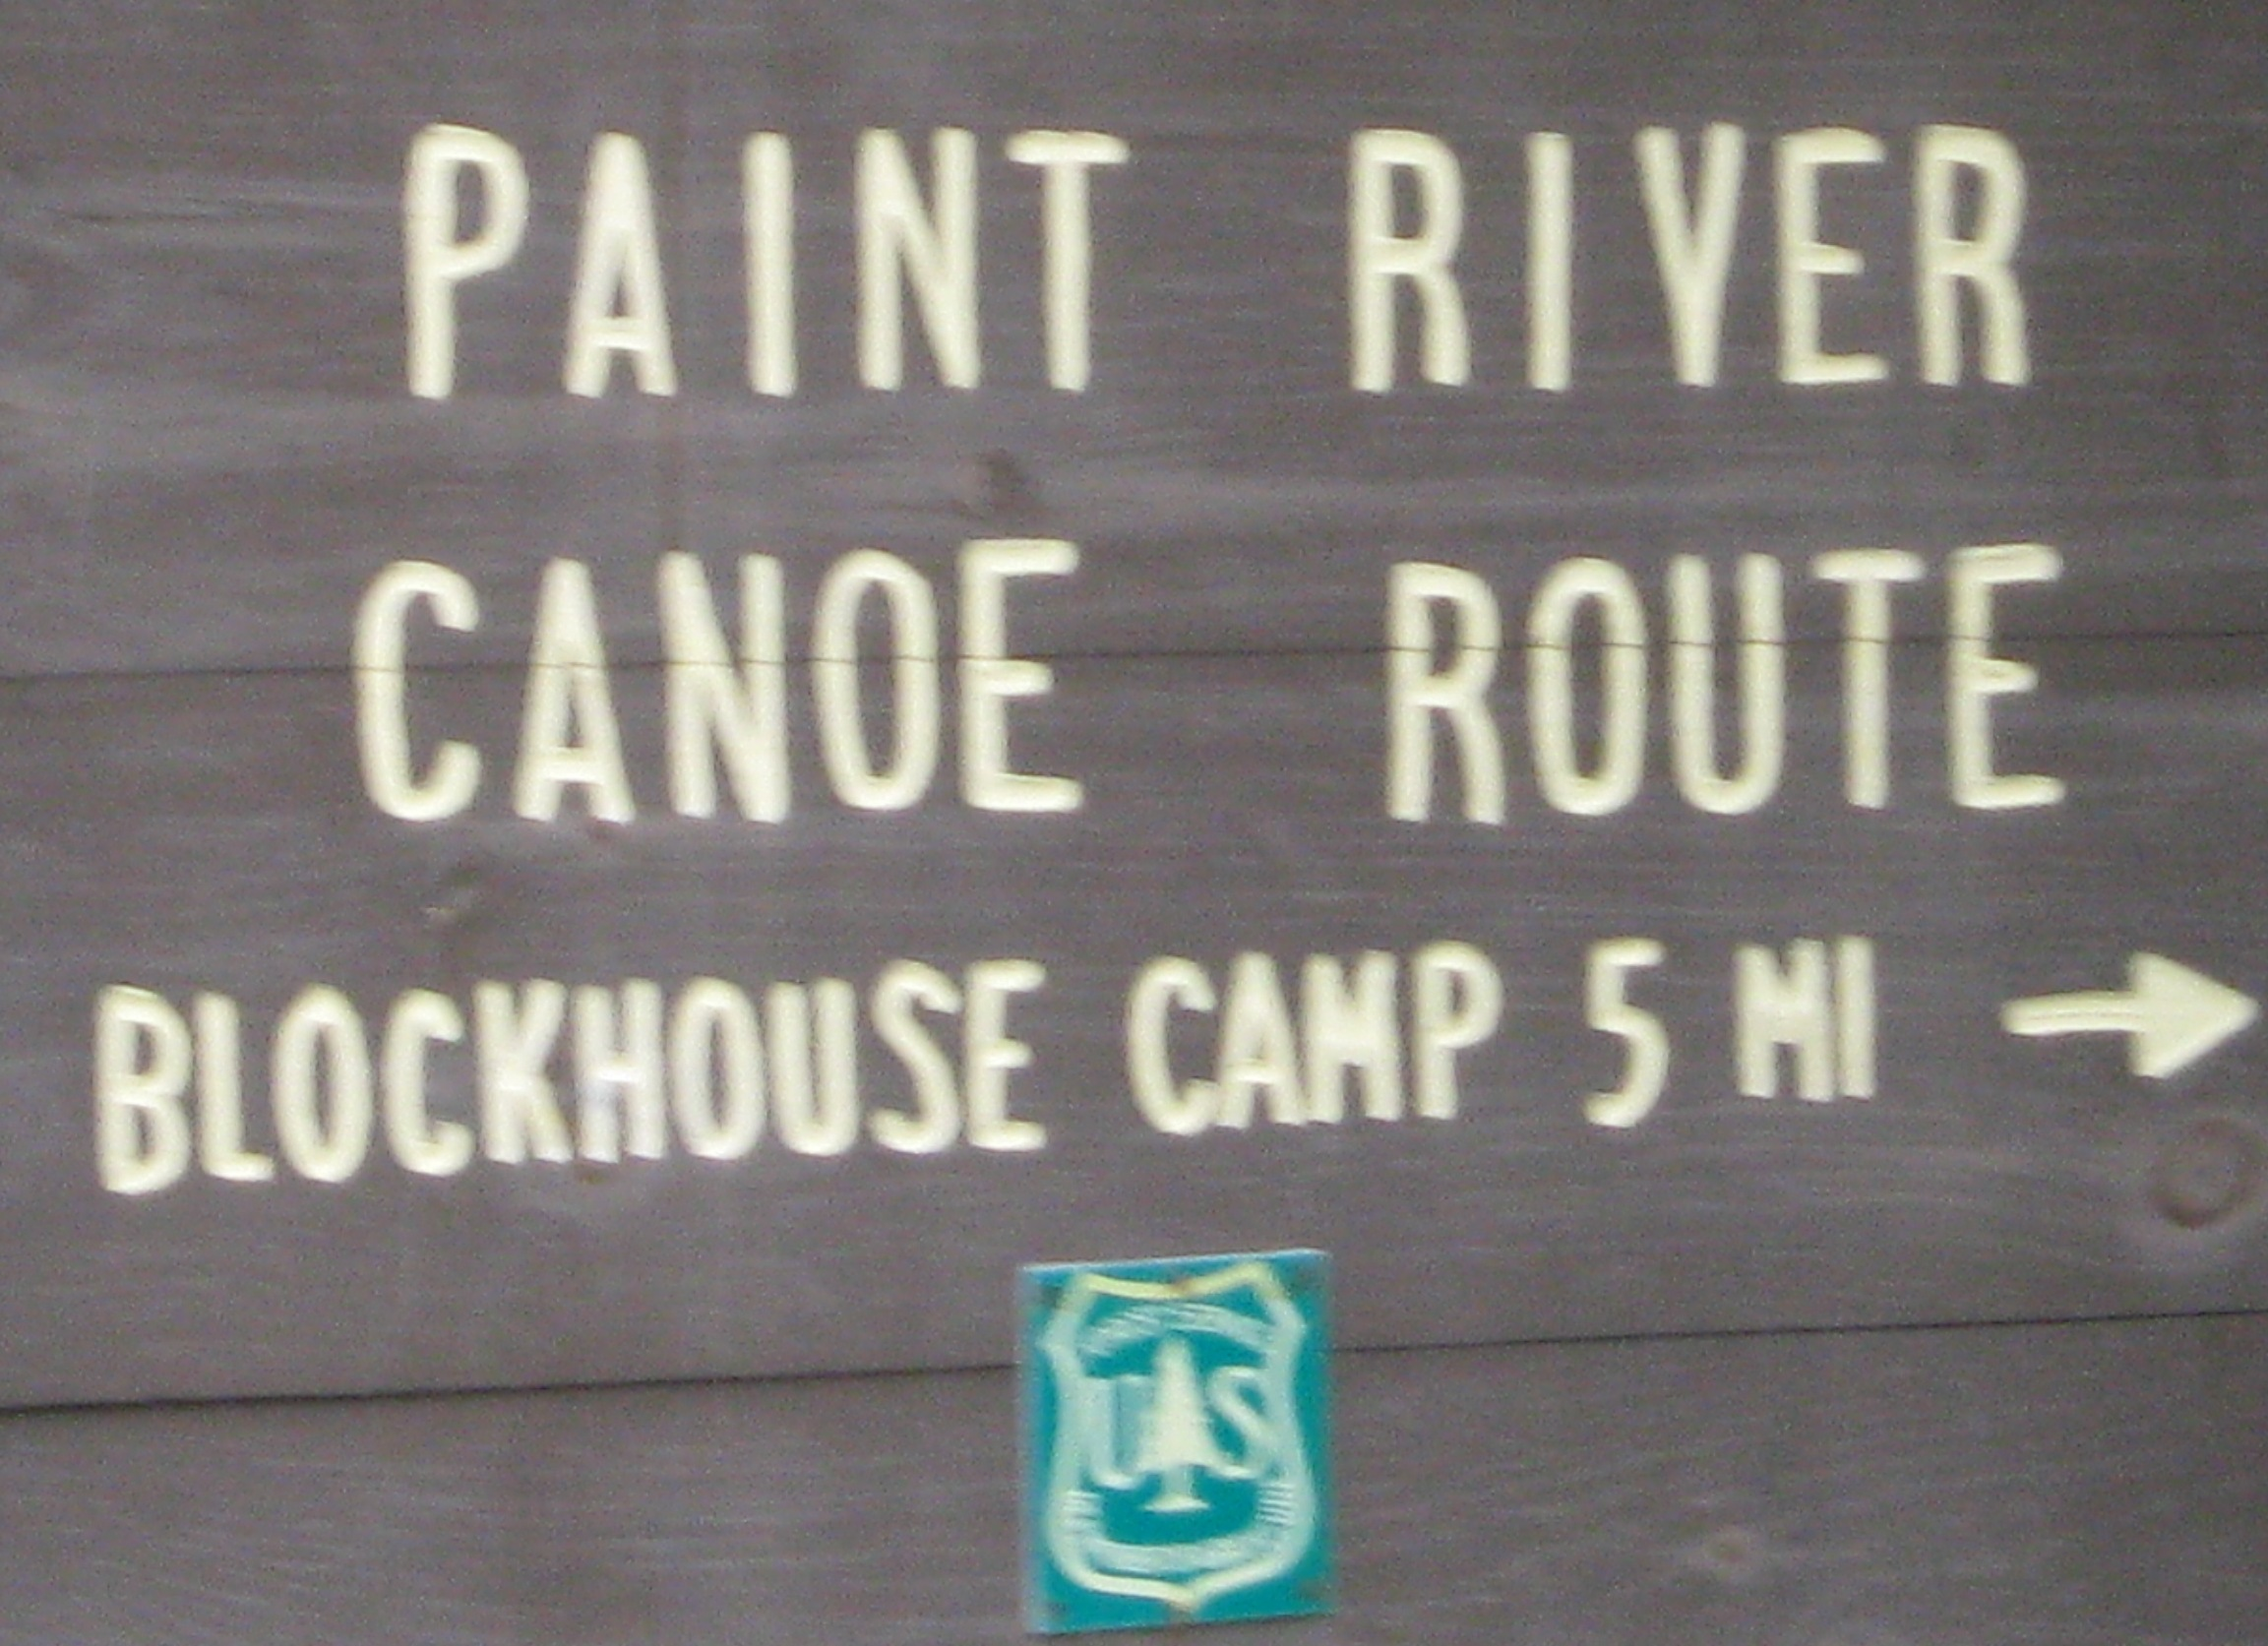 Sign for Canoe Putin at Paint River CG